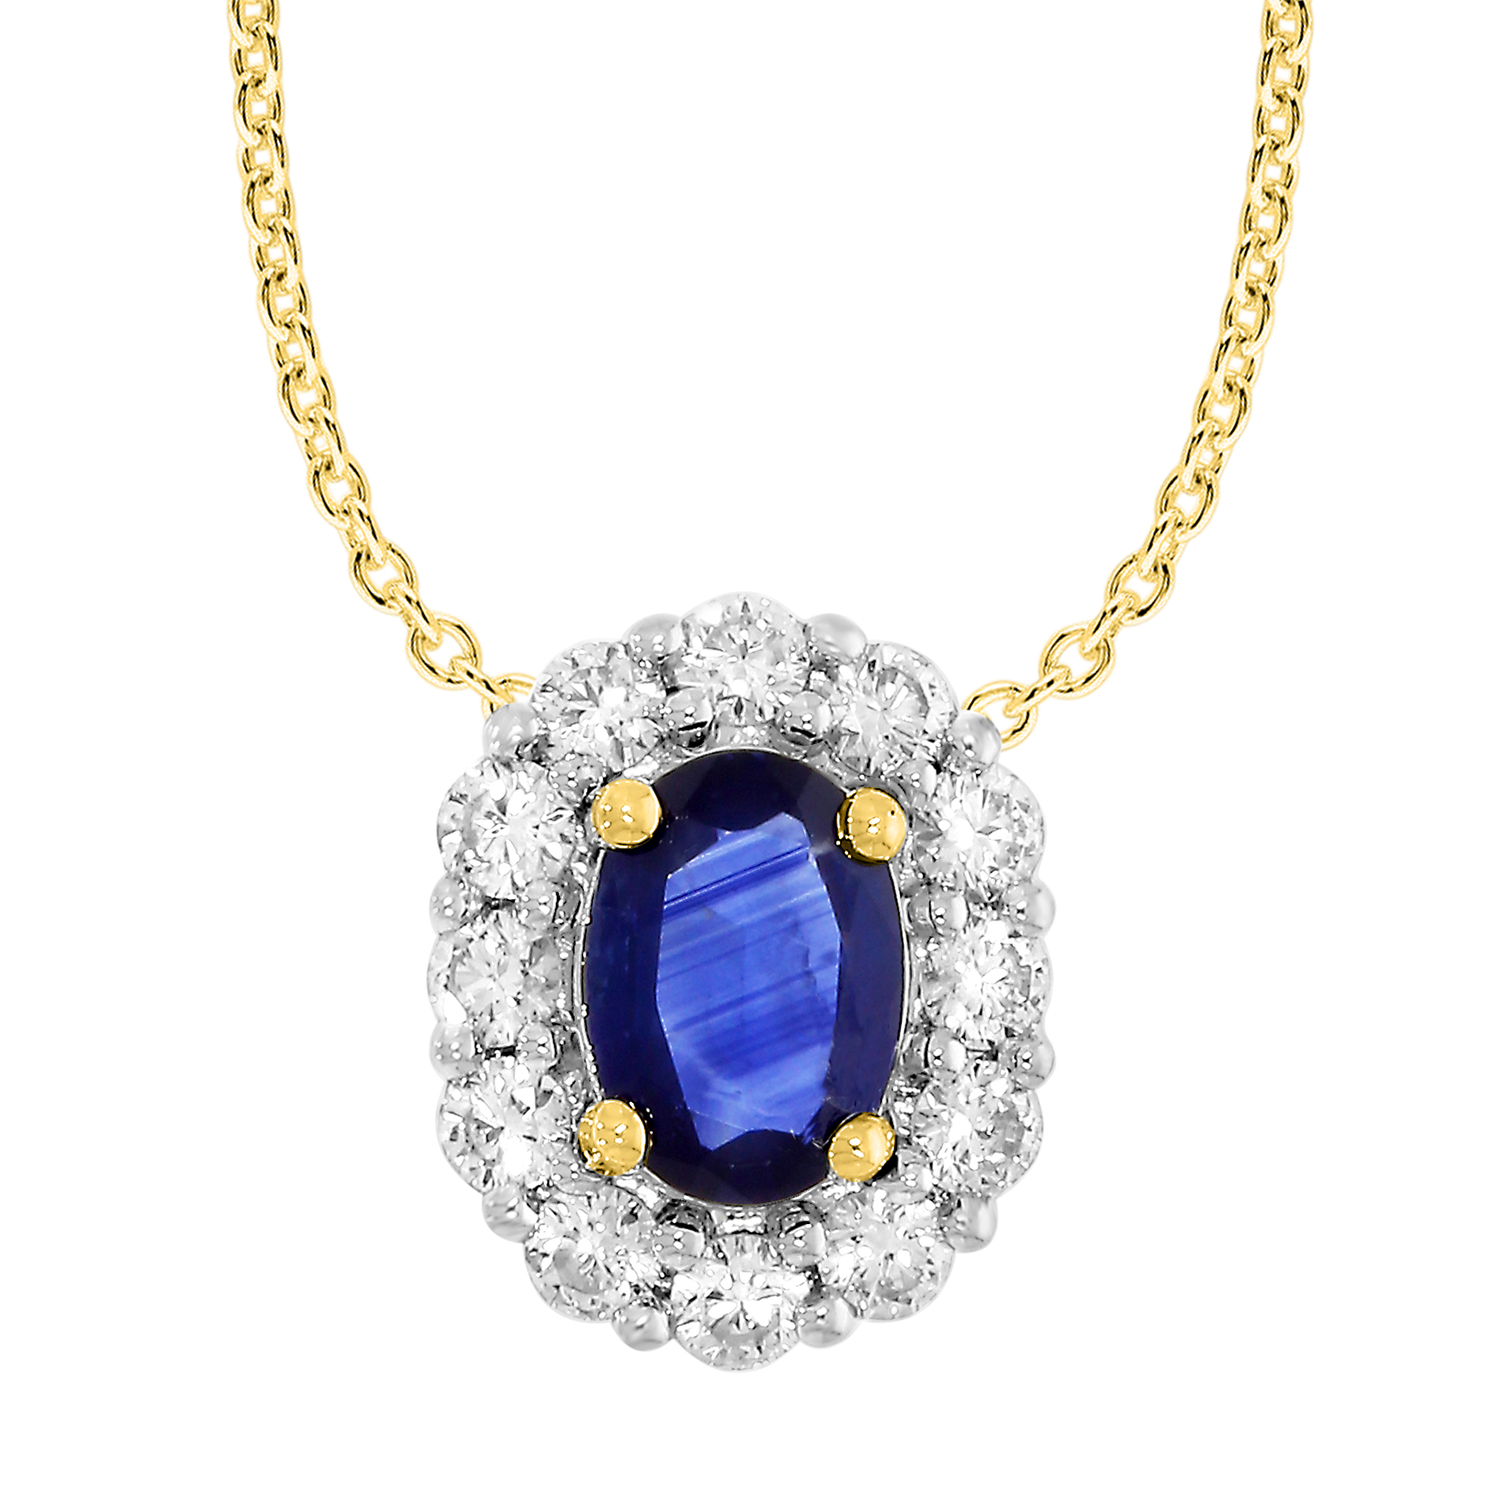 18ct Yellow Gold Natural Sapphire & Diamond Pendant with 45cm Chain